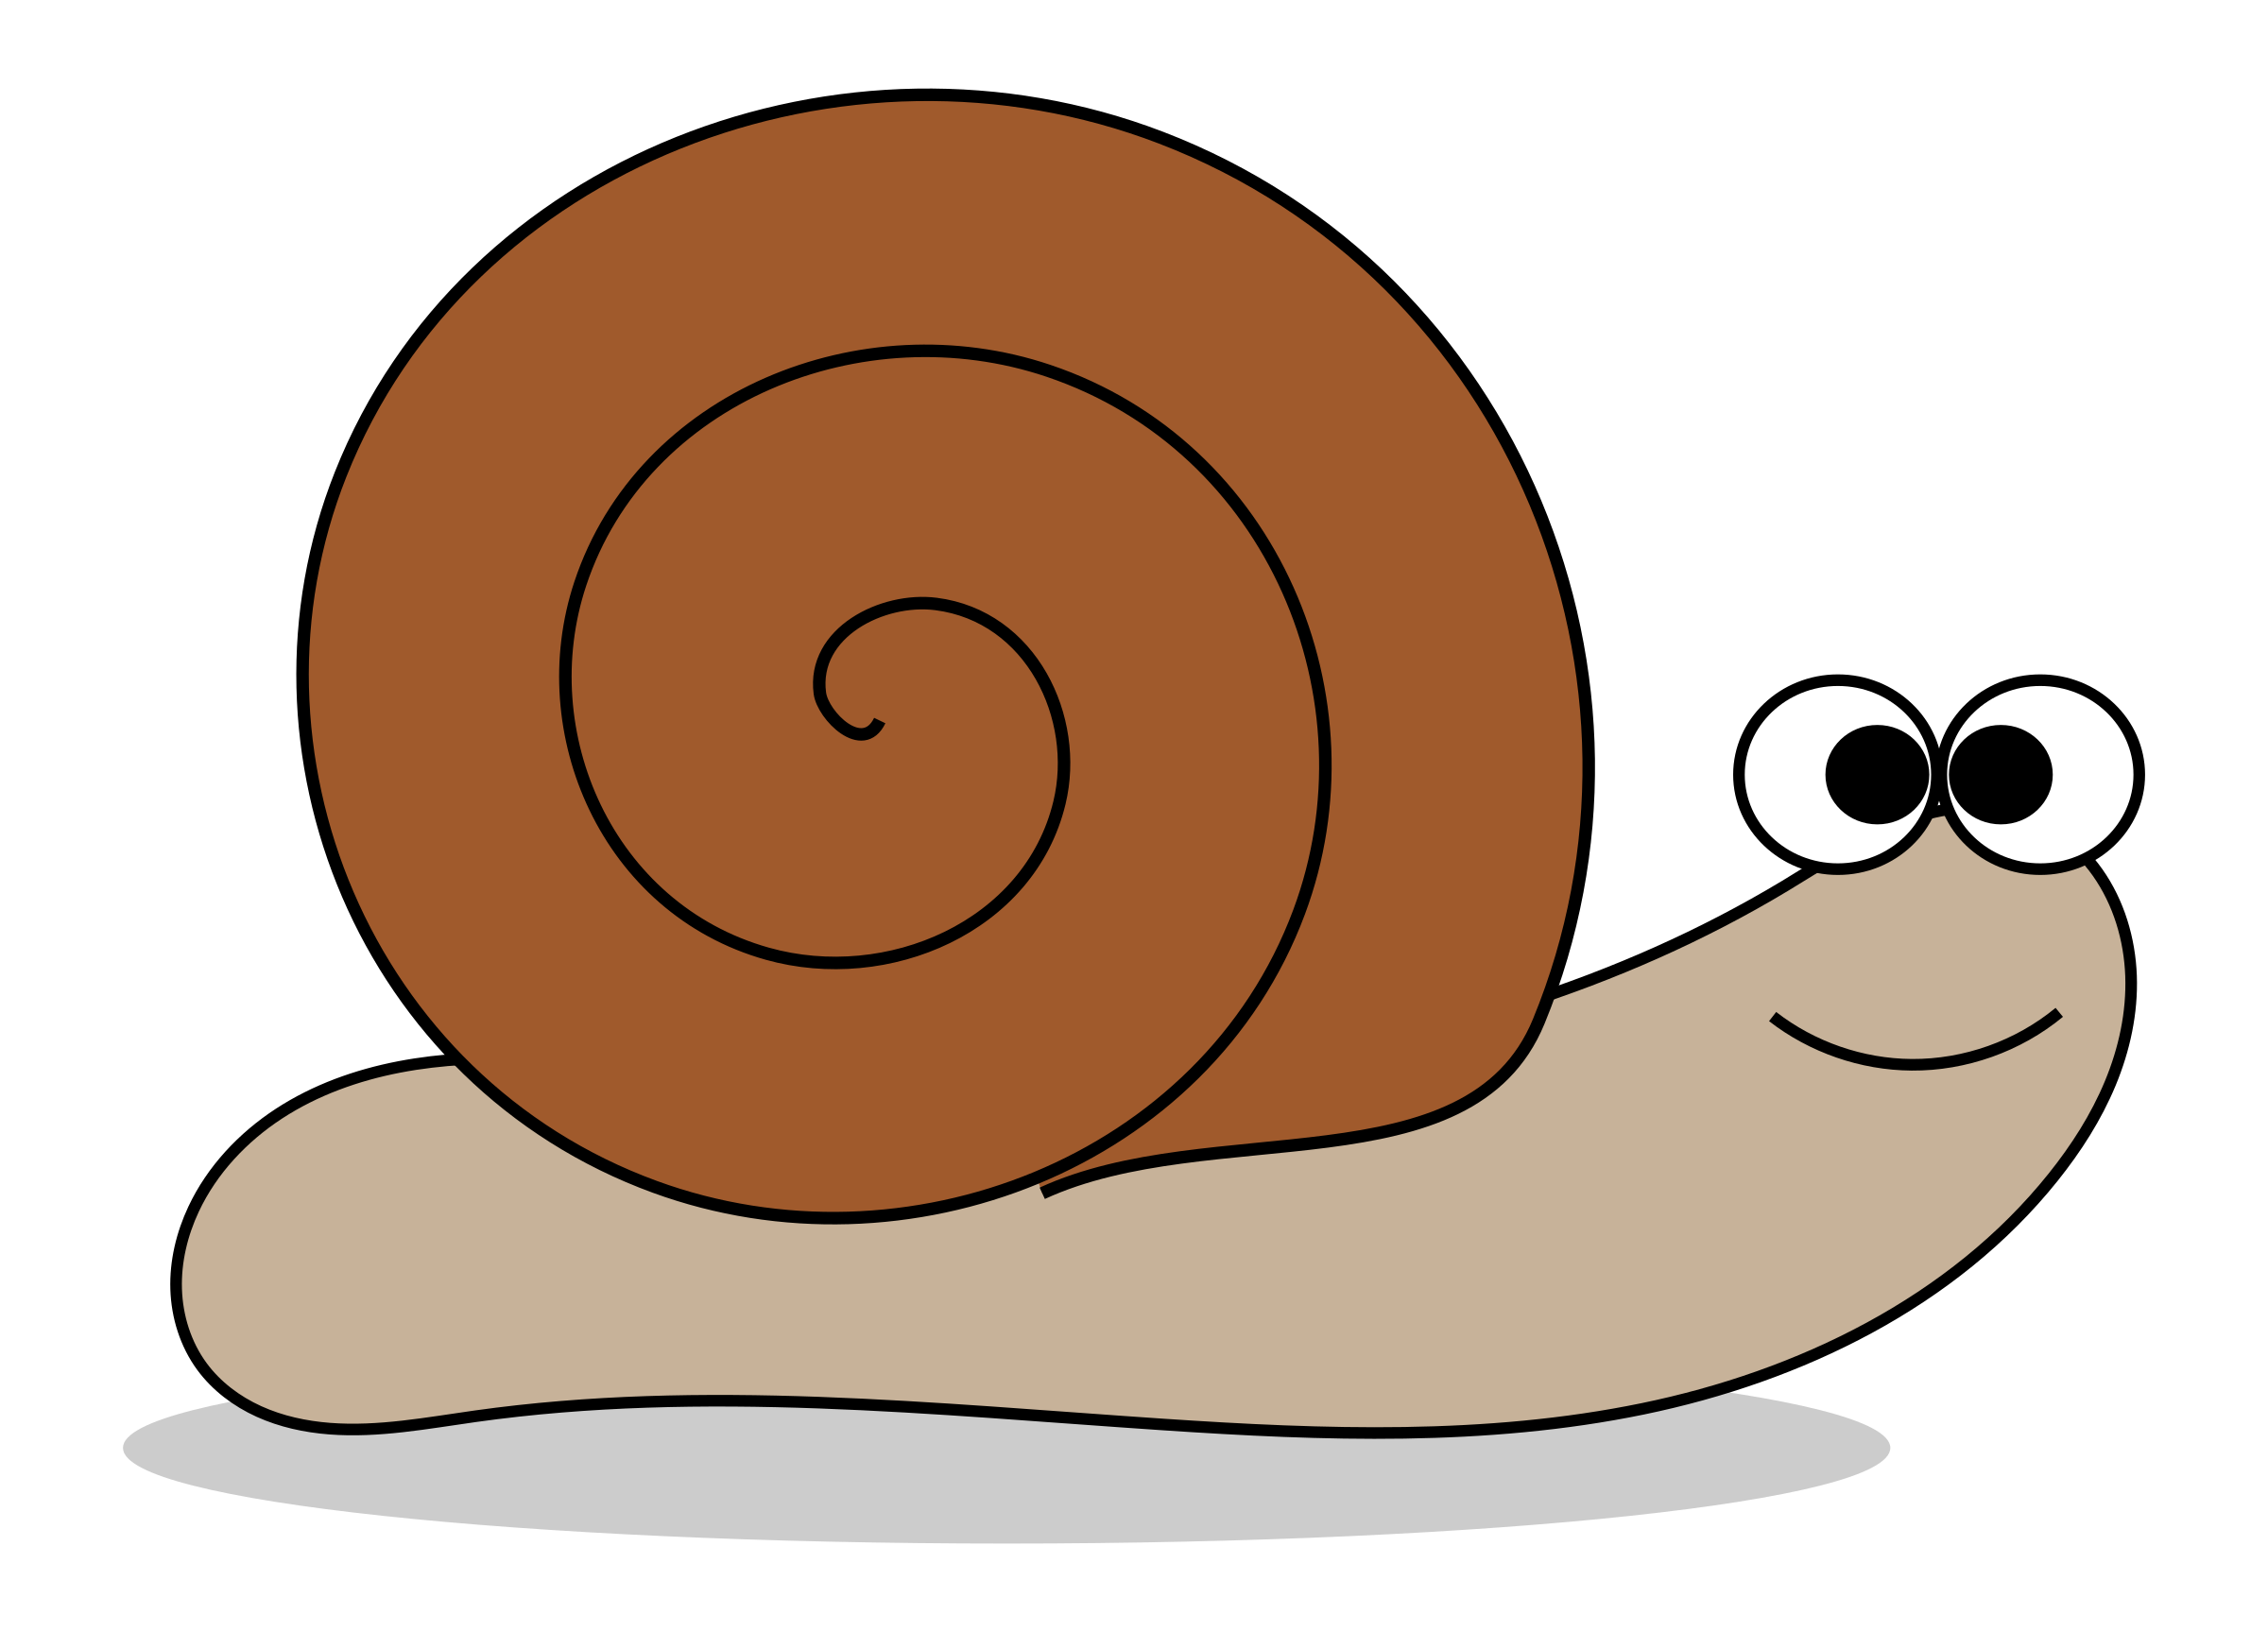 Cartoon Snail Clipart Free Public Domain-Cartoon snail clipart free public domain image-0